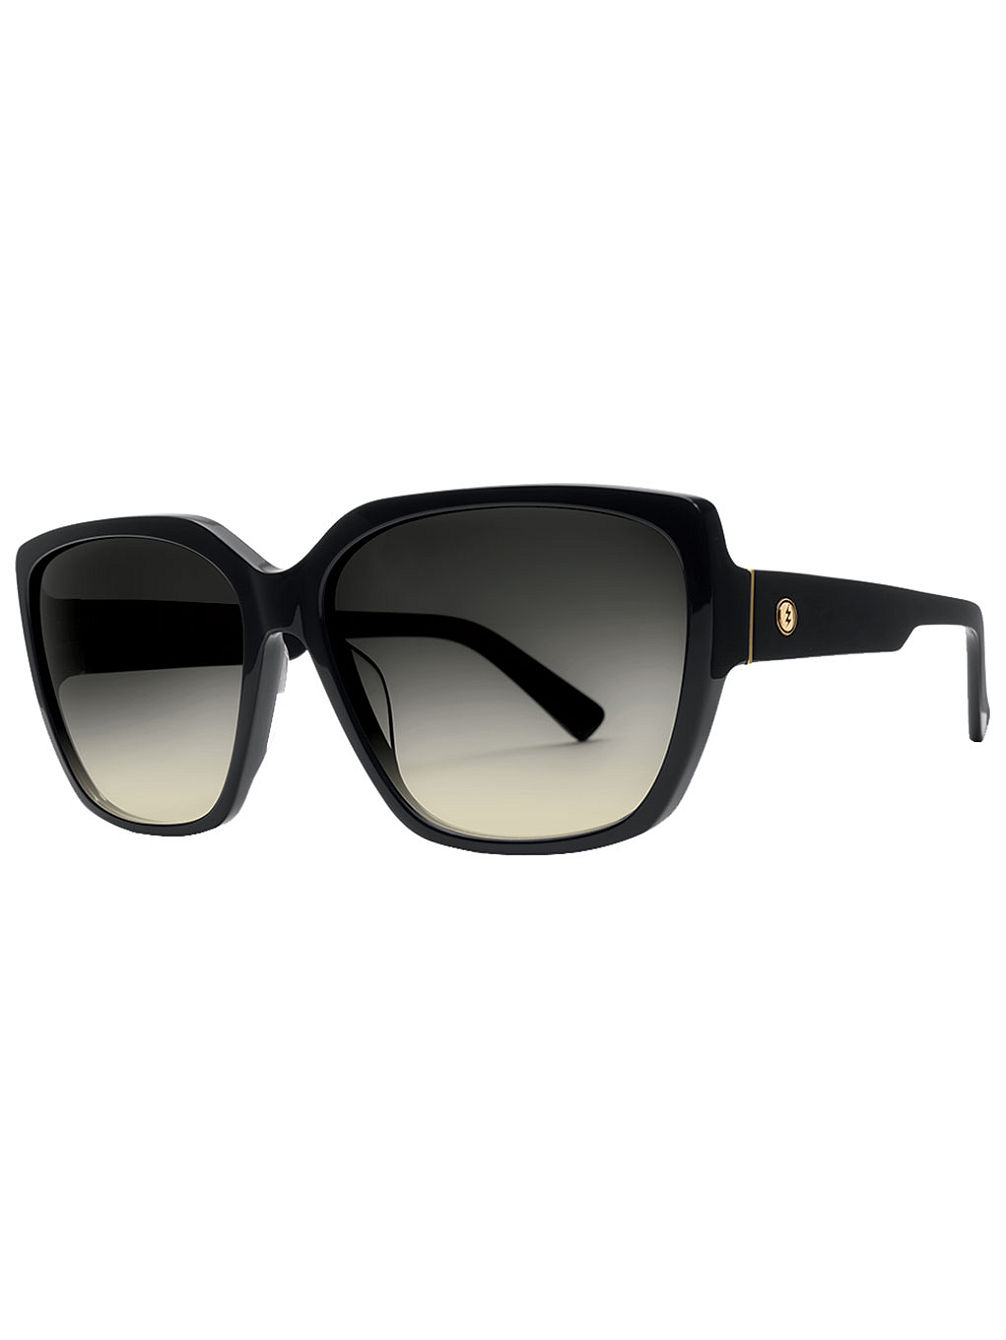 Honey Bee Gloss Black Sonnenbrille